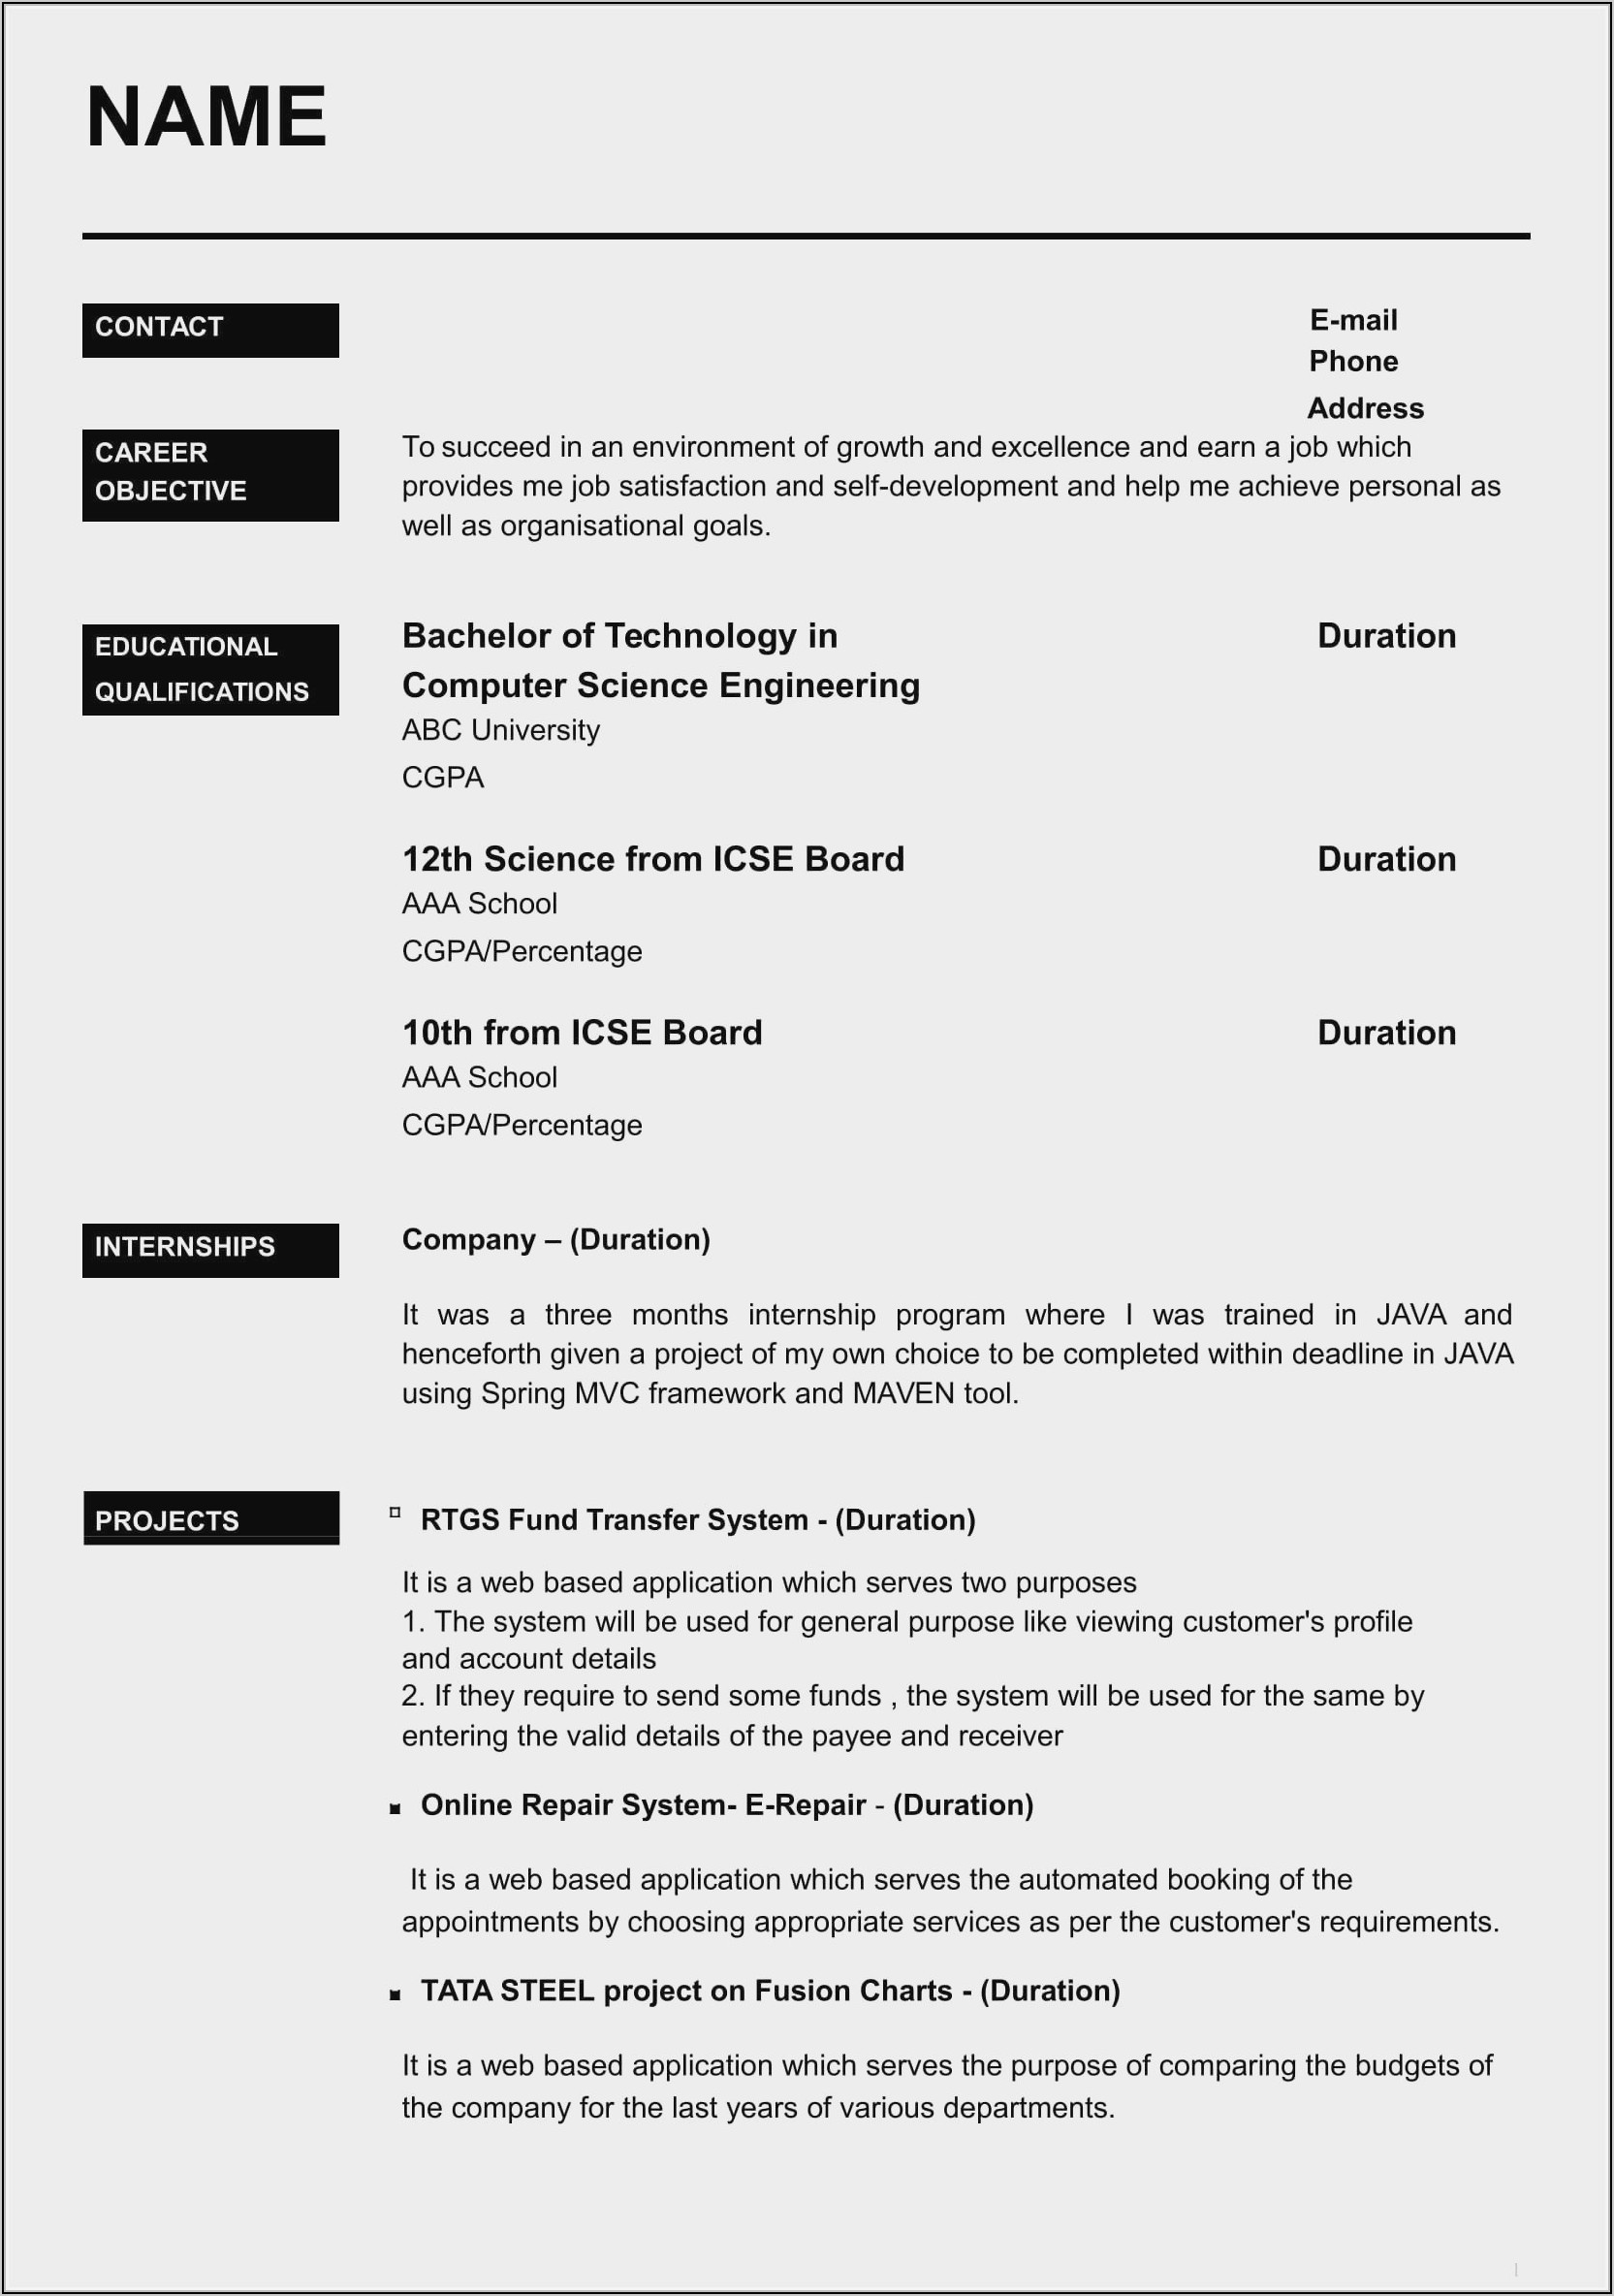 Sample Resume Free Download For Freshers